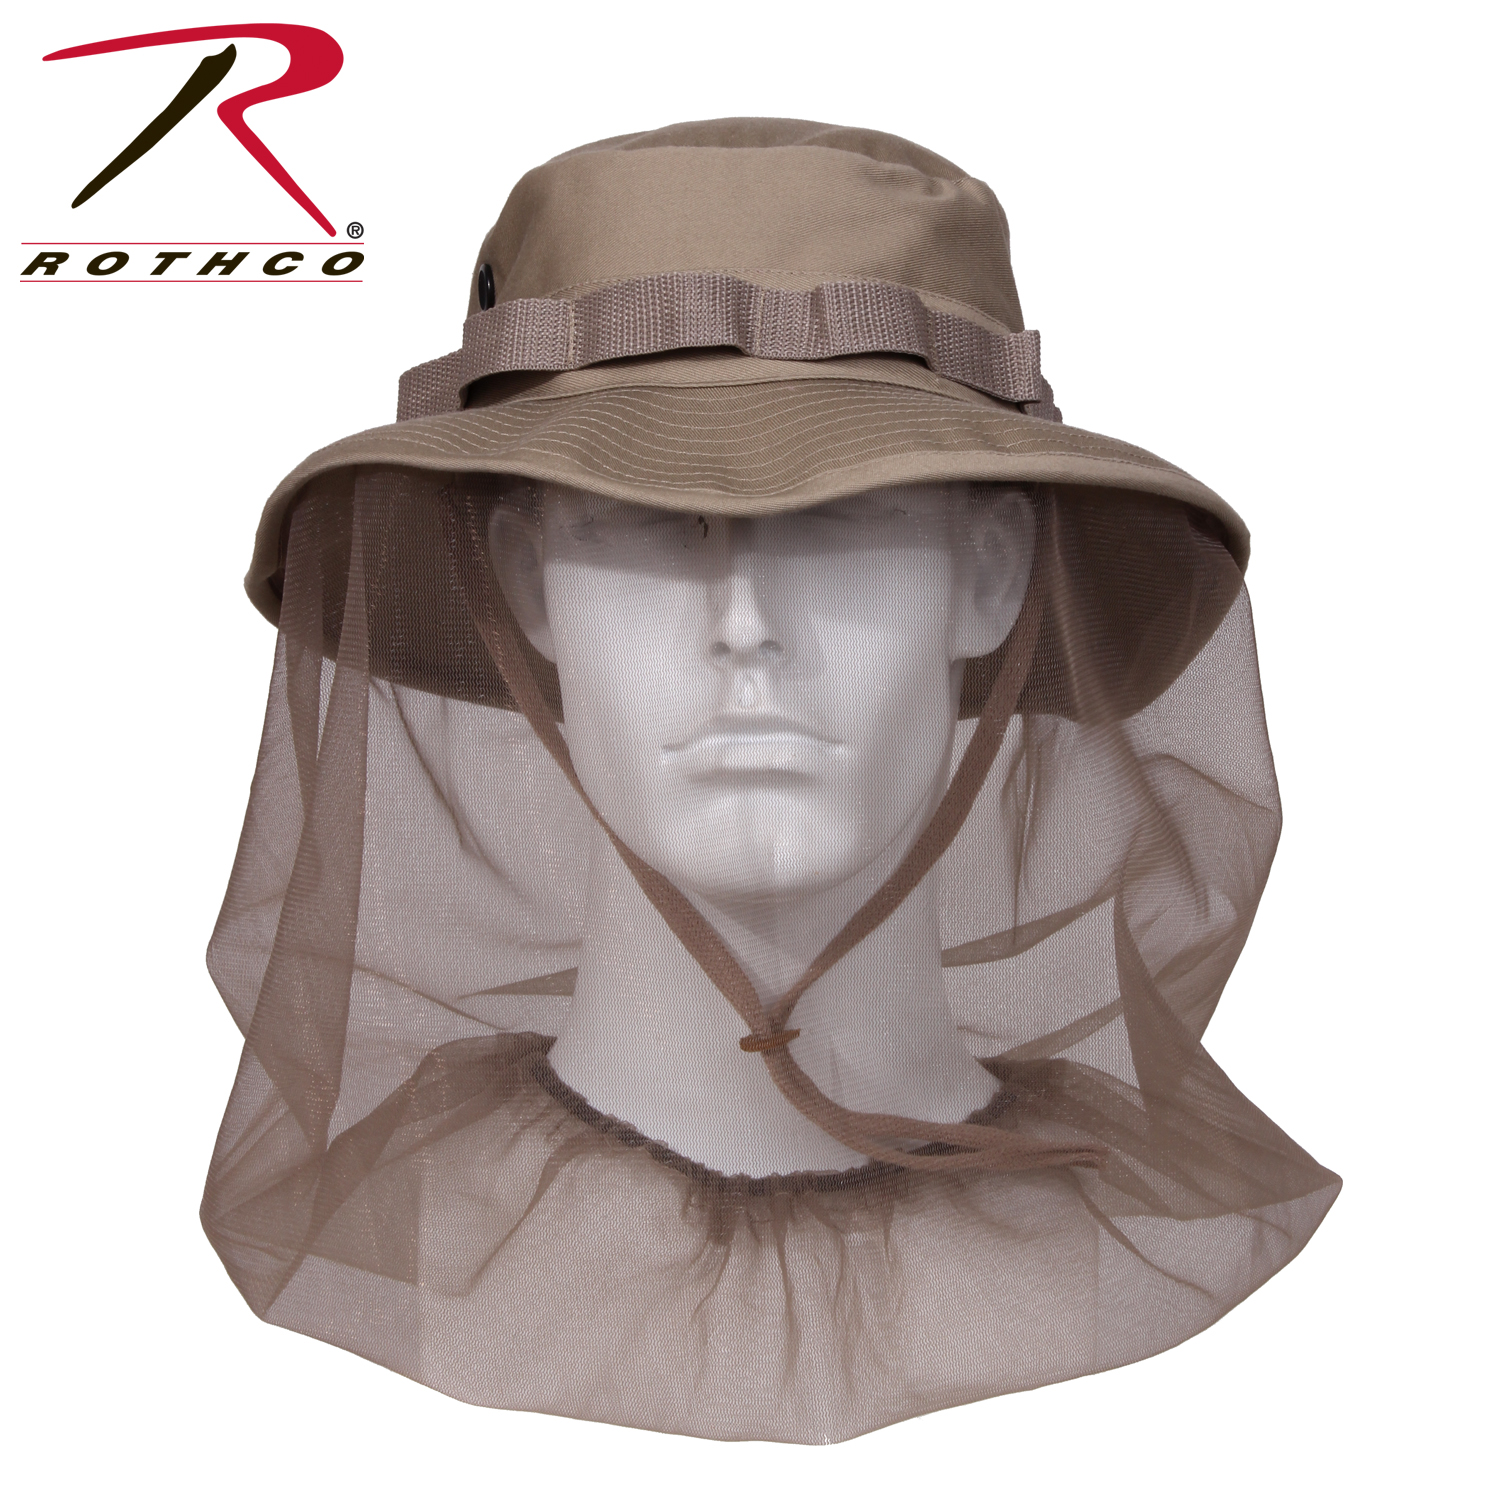 4d016b4ee50 Rothco Boonie Hat With Mosquito Netting